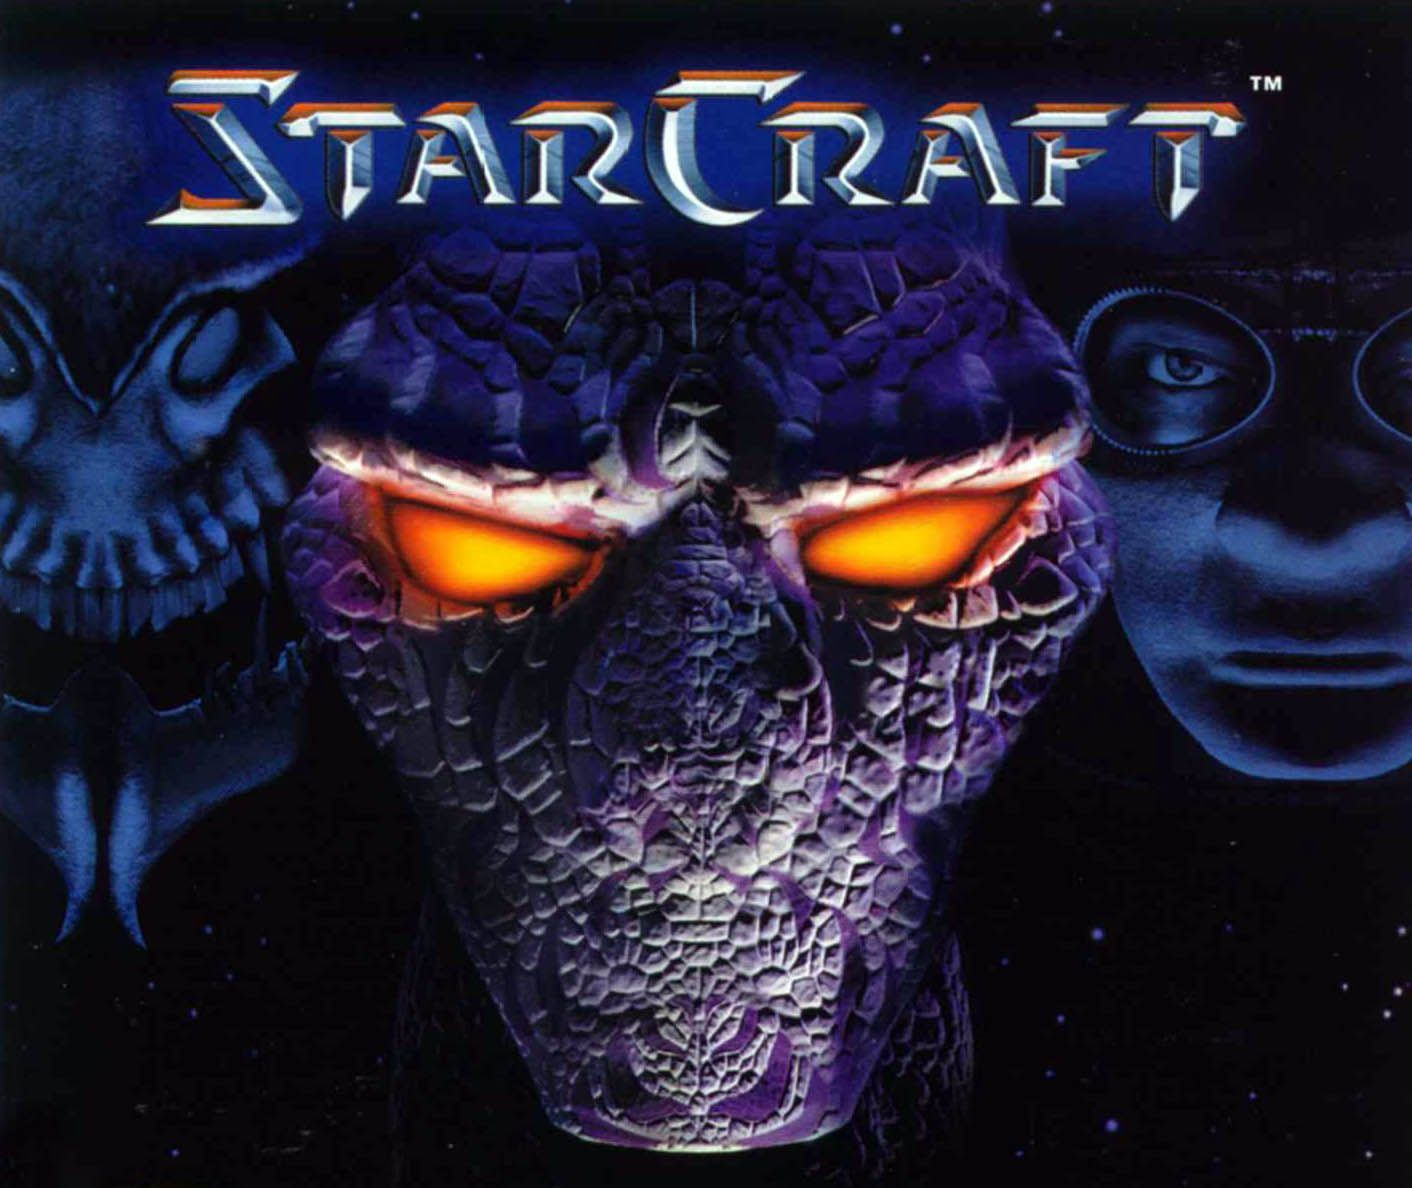 Starcraft by Blizzard Click for 300+ Sound Bites